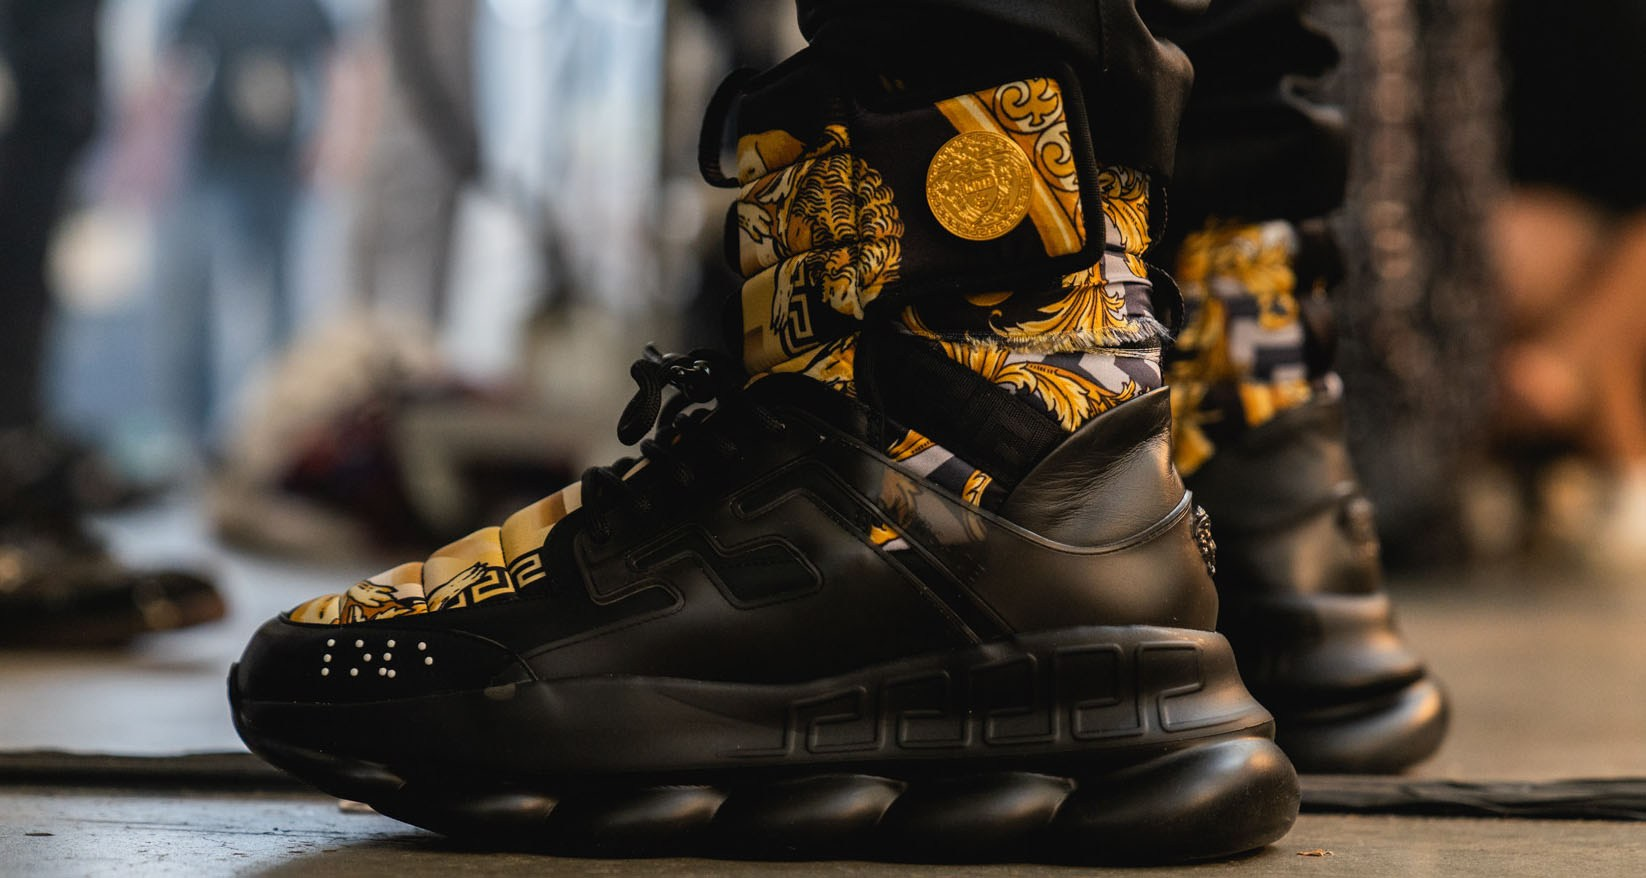 Versace collaboration with KITH